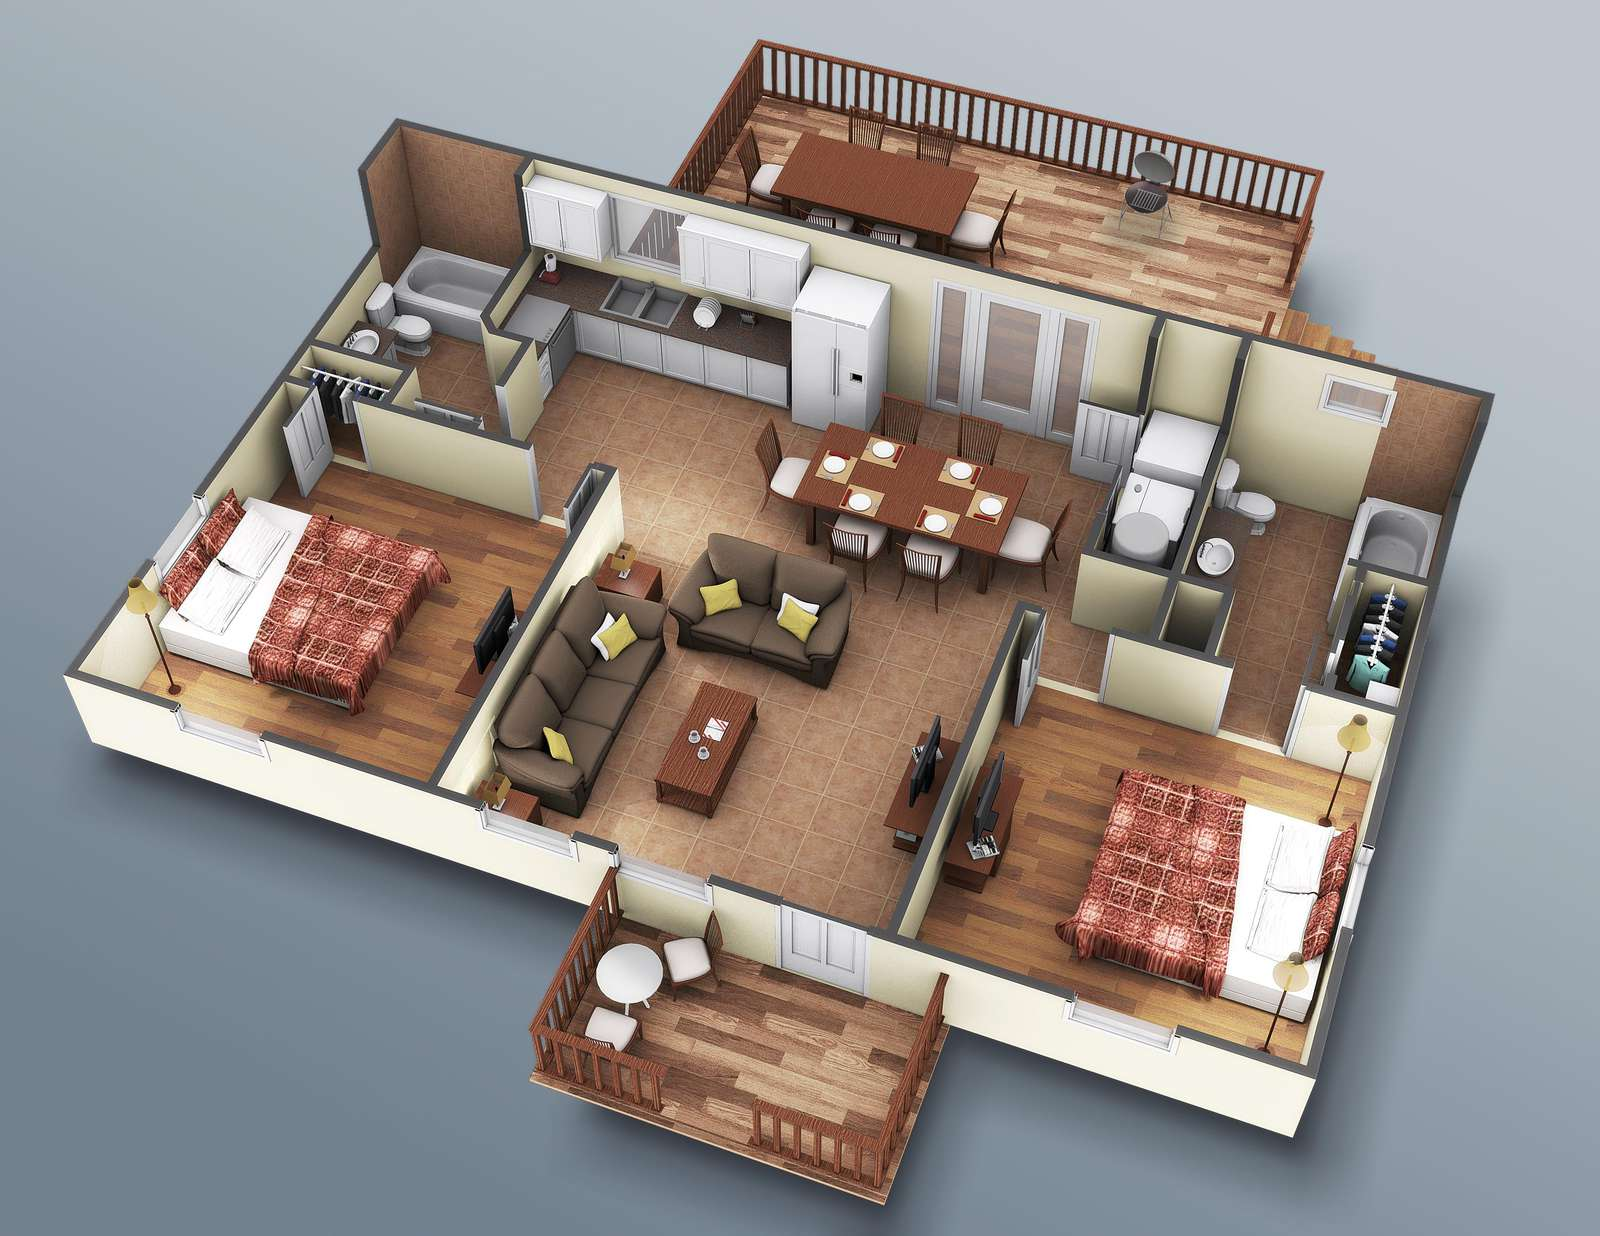 This is an interior rendering of the home. It is accurate down to furniture location.